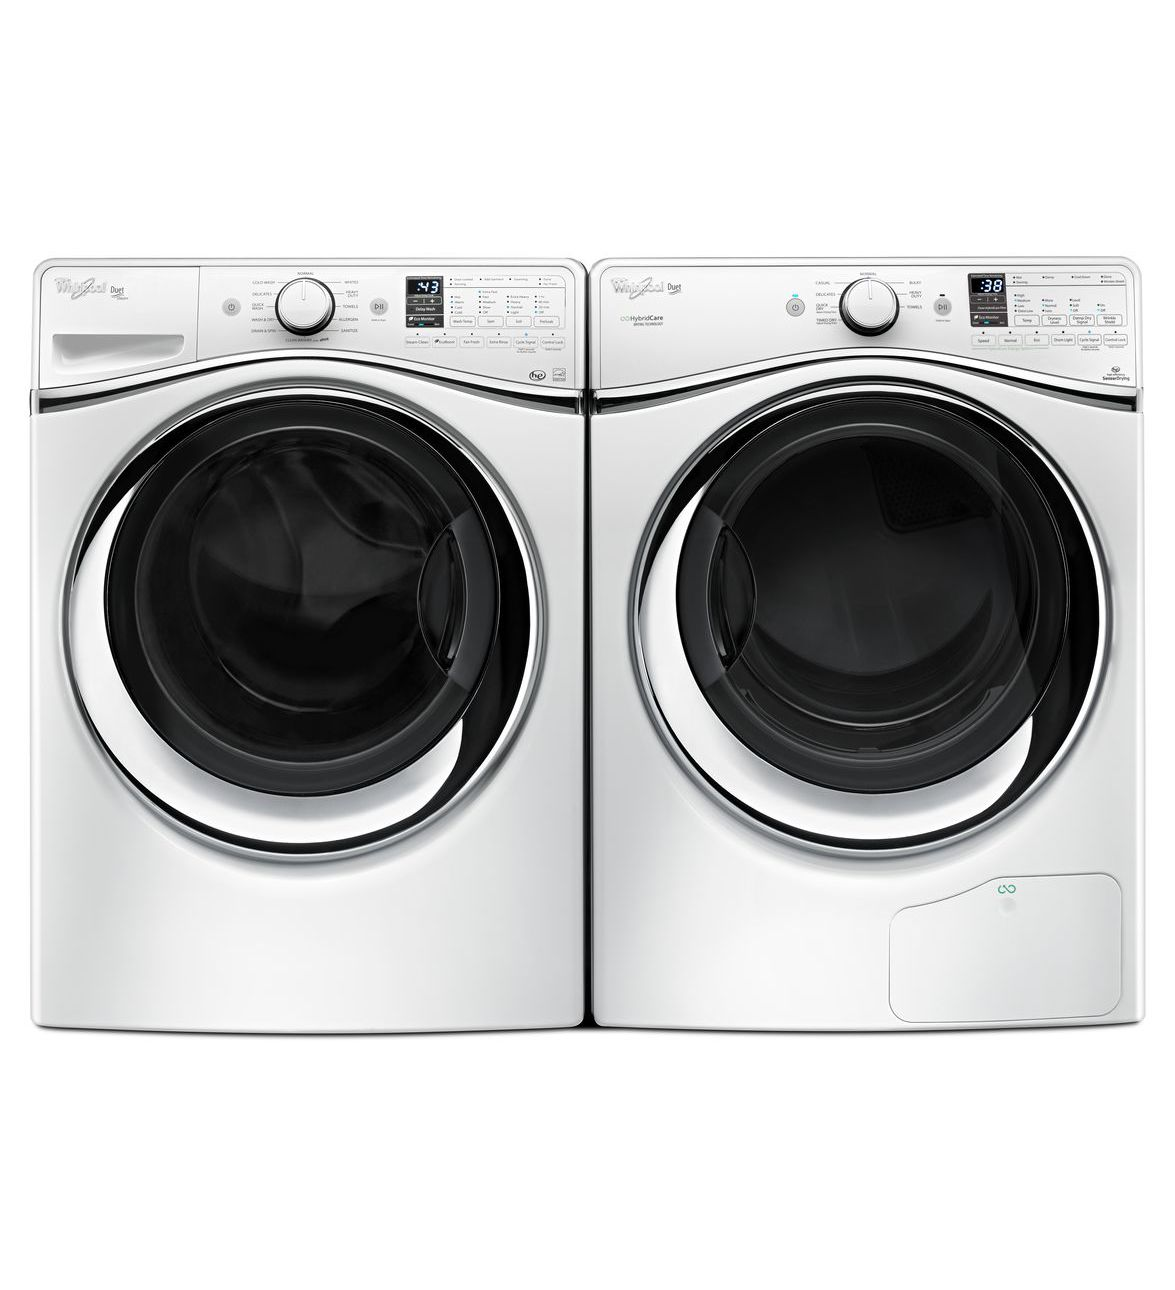 whirl-heat-pump-dryer-side-by-side